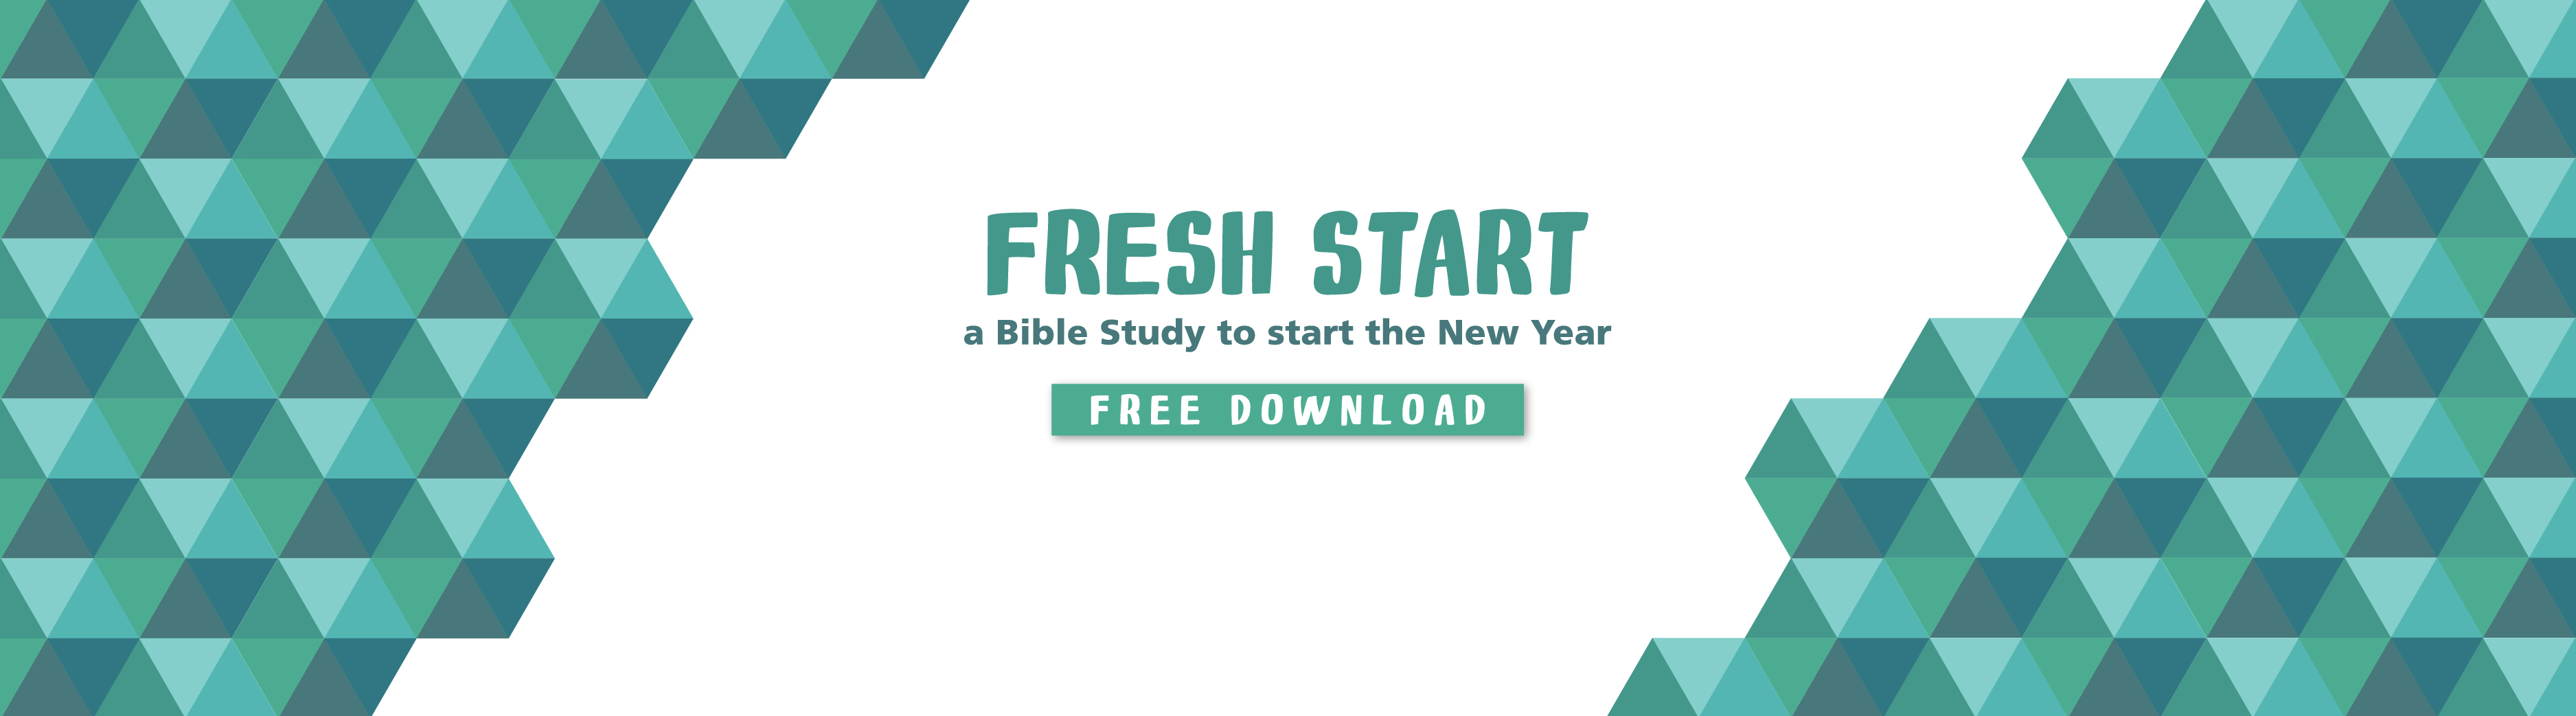 new year bible study, youth ministry